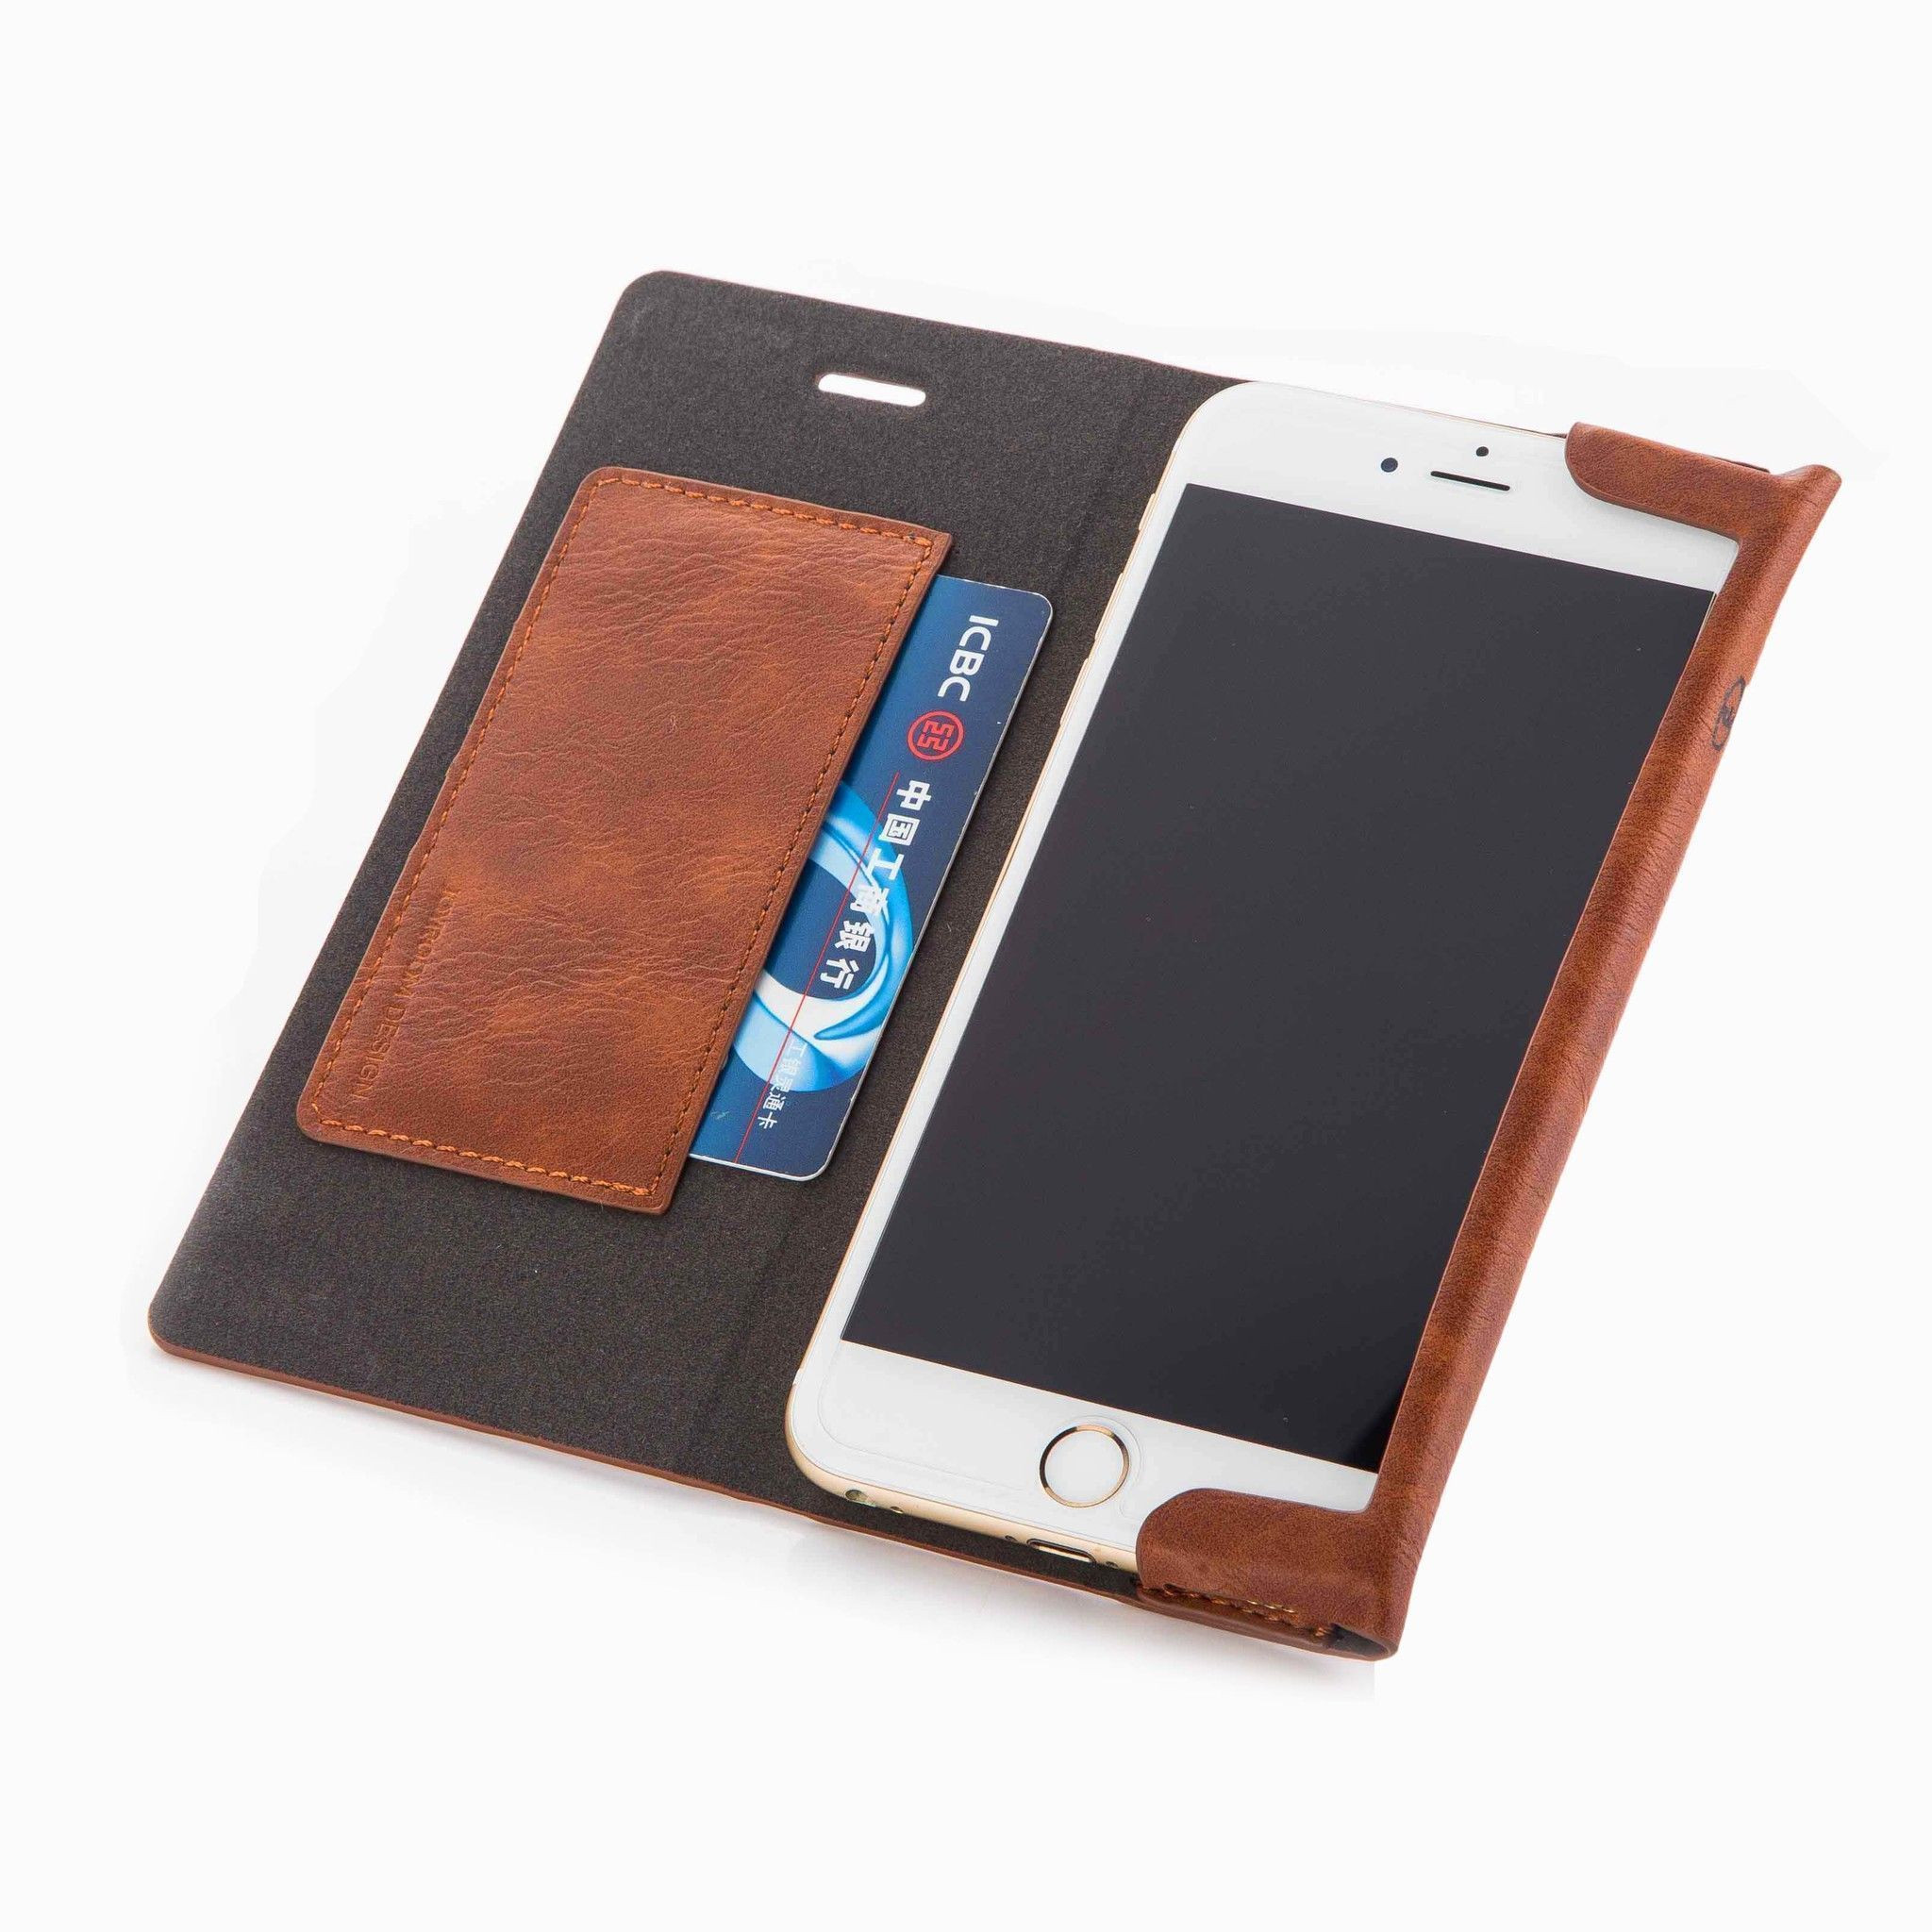 reputable site 32814 51f09 Joyroom ® Apple iPhone 6 Plus / 6S Plus England Folio with Stand + Credit  Card Slot Magnetic Flip Cover